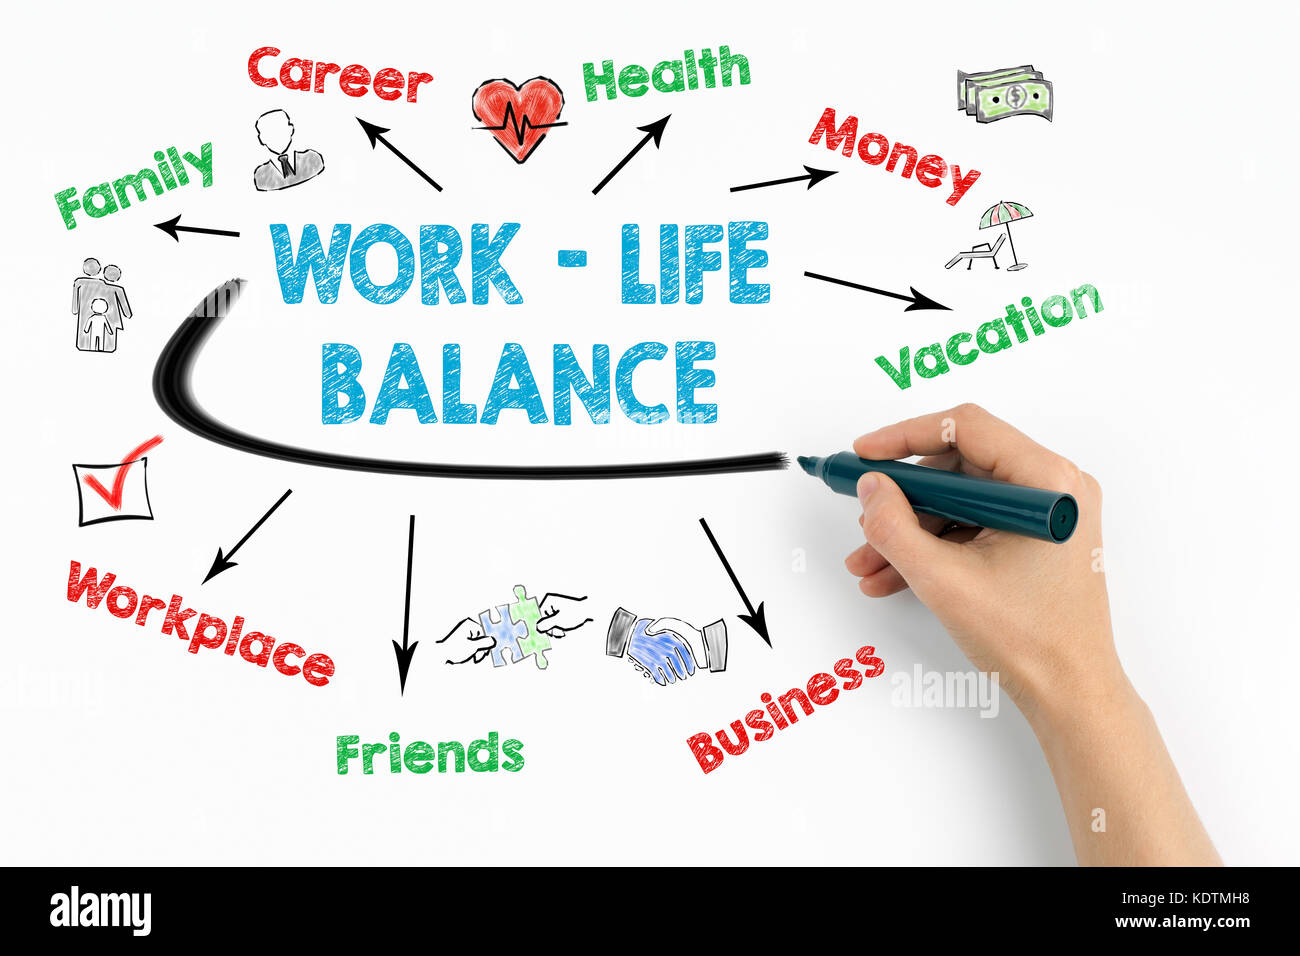 work life balance concept. Chart with keywords and icons on white background - Stock Image